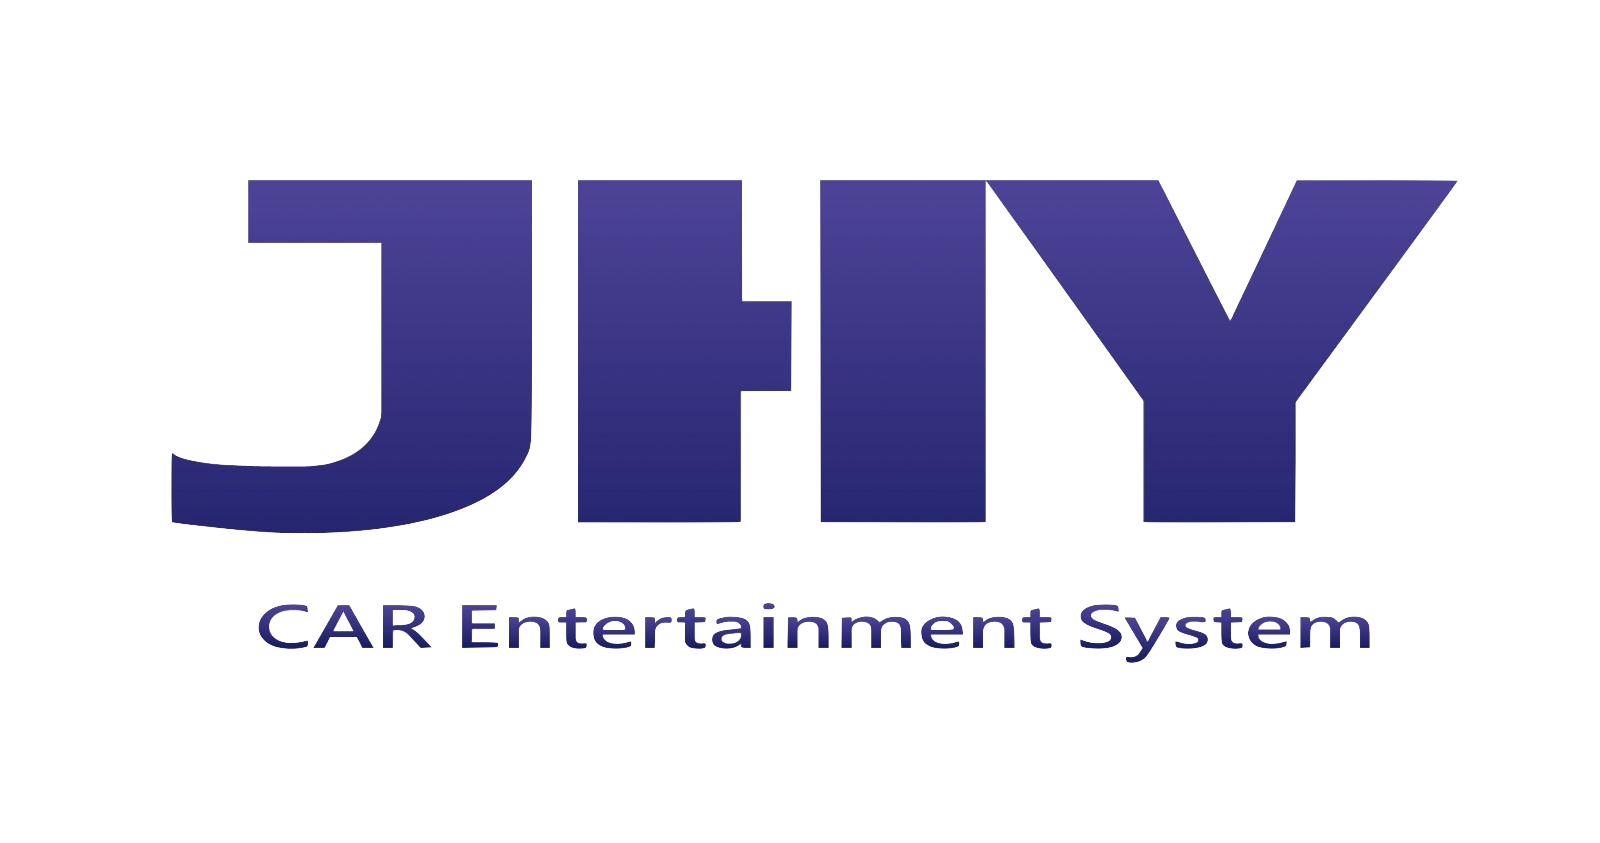 JHY LOGO.png